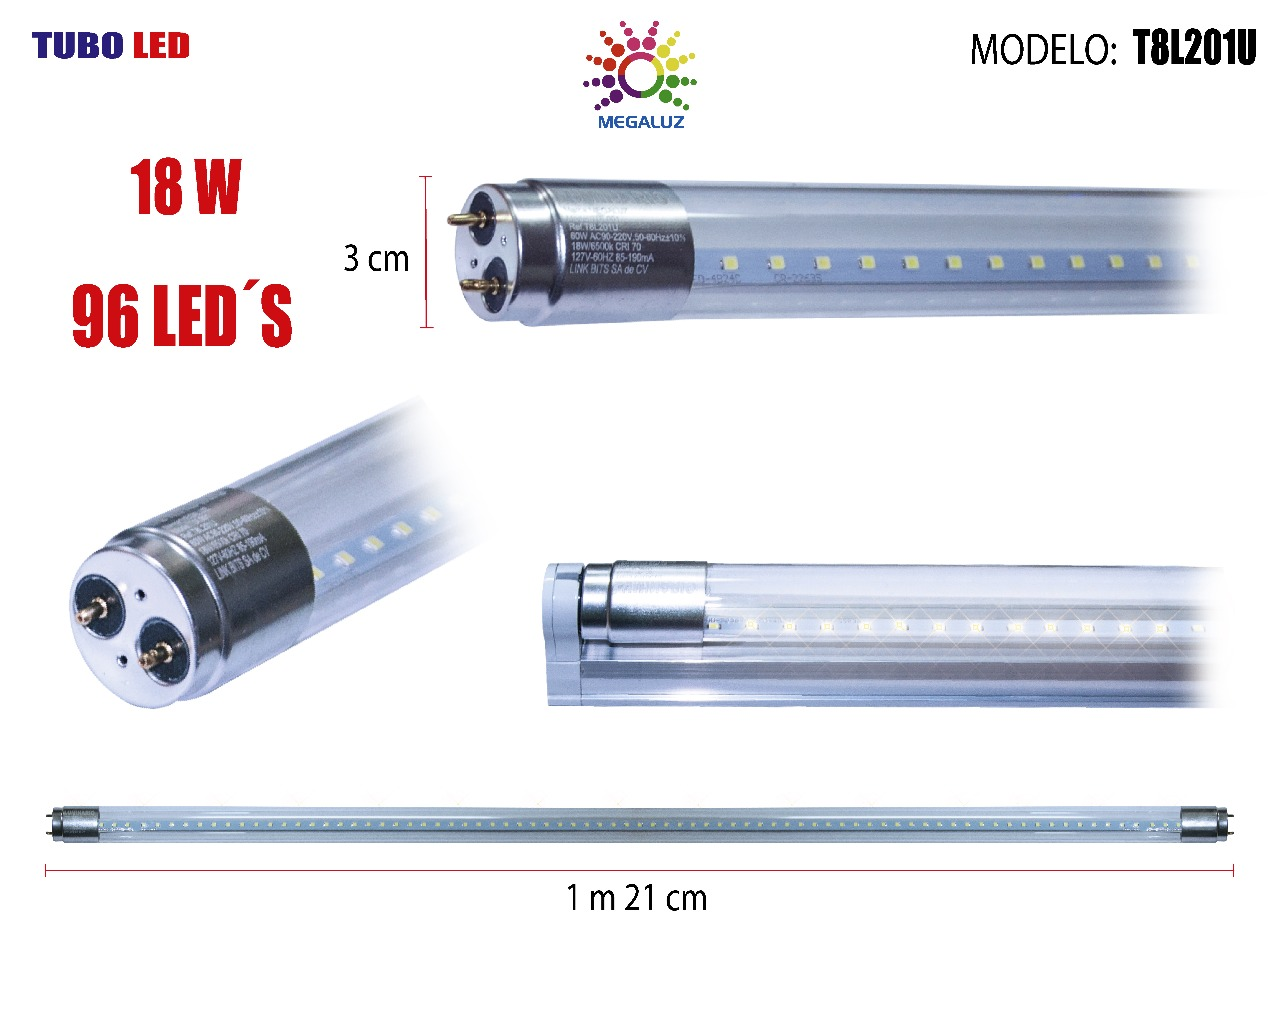 L mpara led integrada 18w distribuidora ferretera mixcoac for Arbol llave regadera